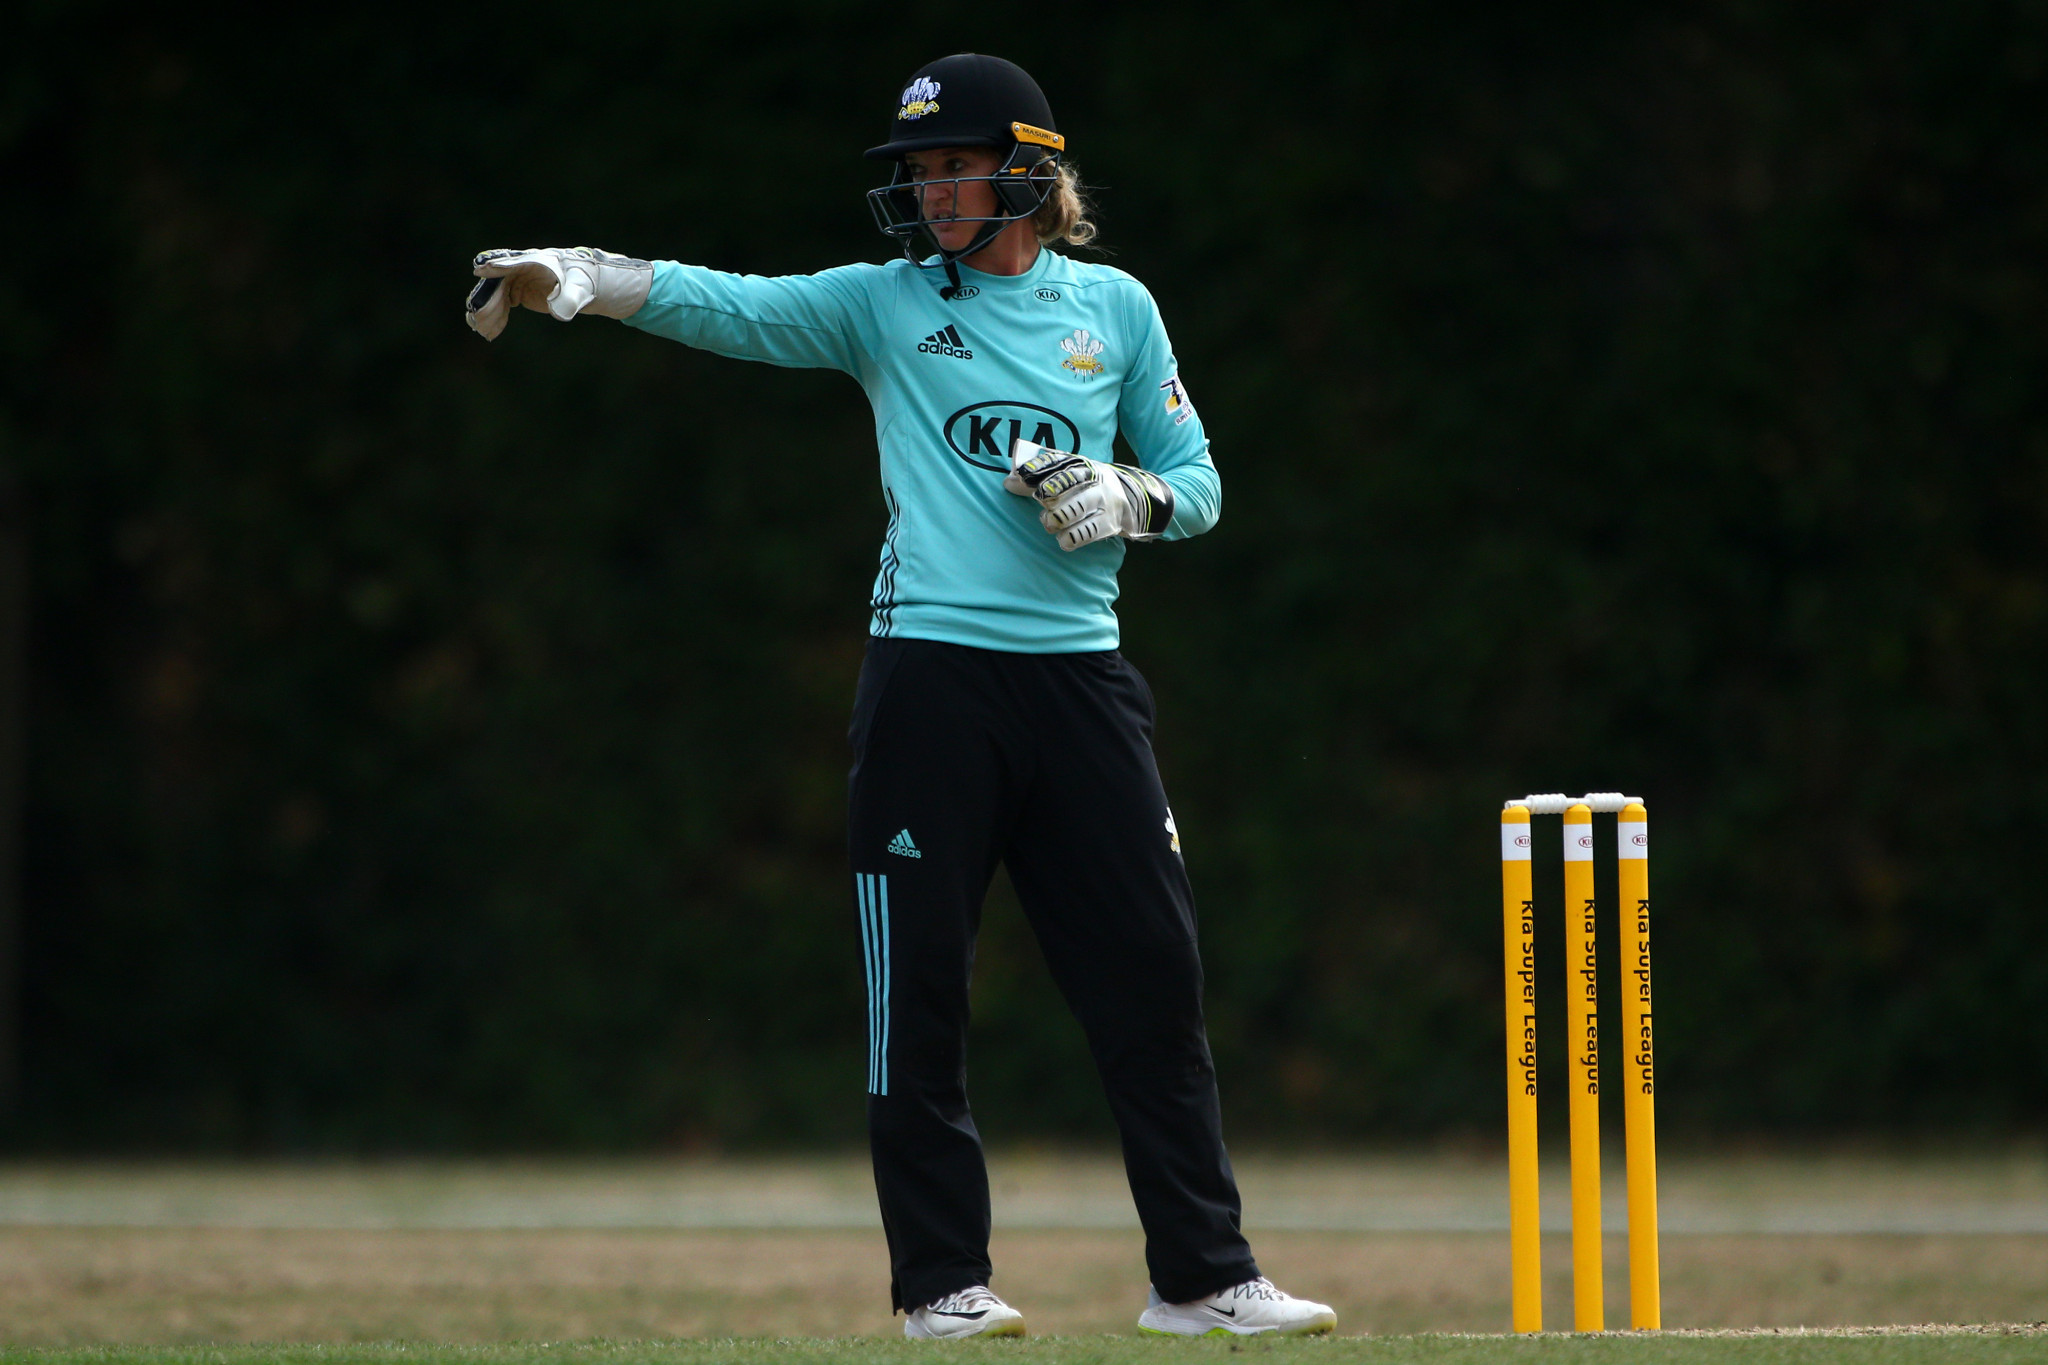 Sarah Taylor will continue to train but will not participate in the ICC Women's World T20 ©Getty Images